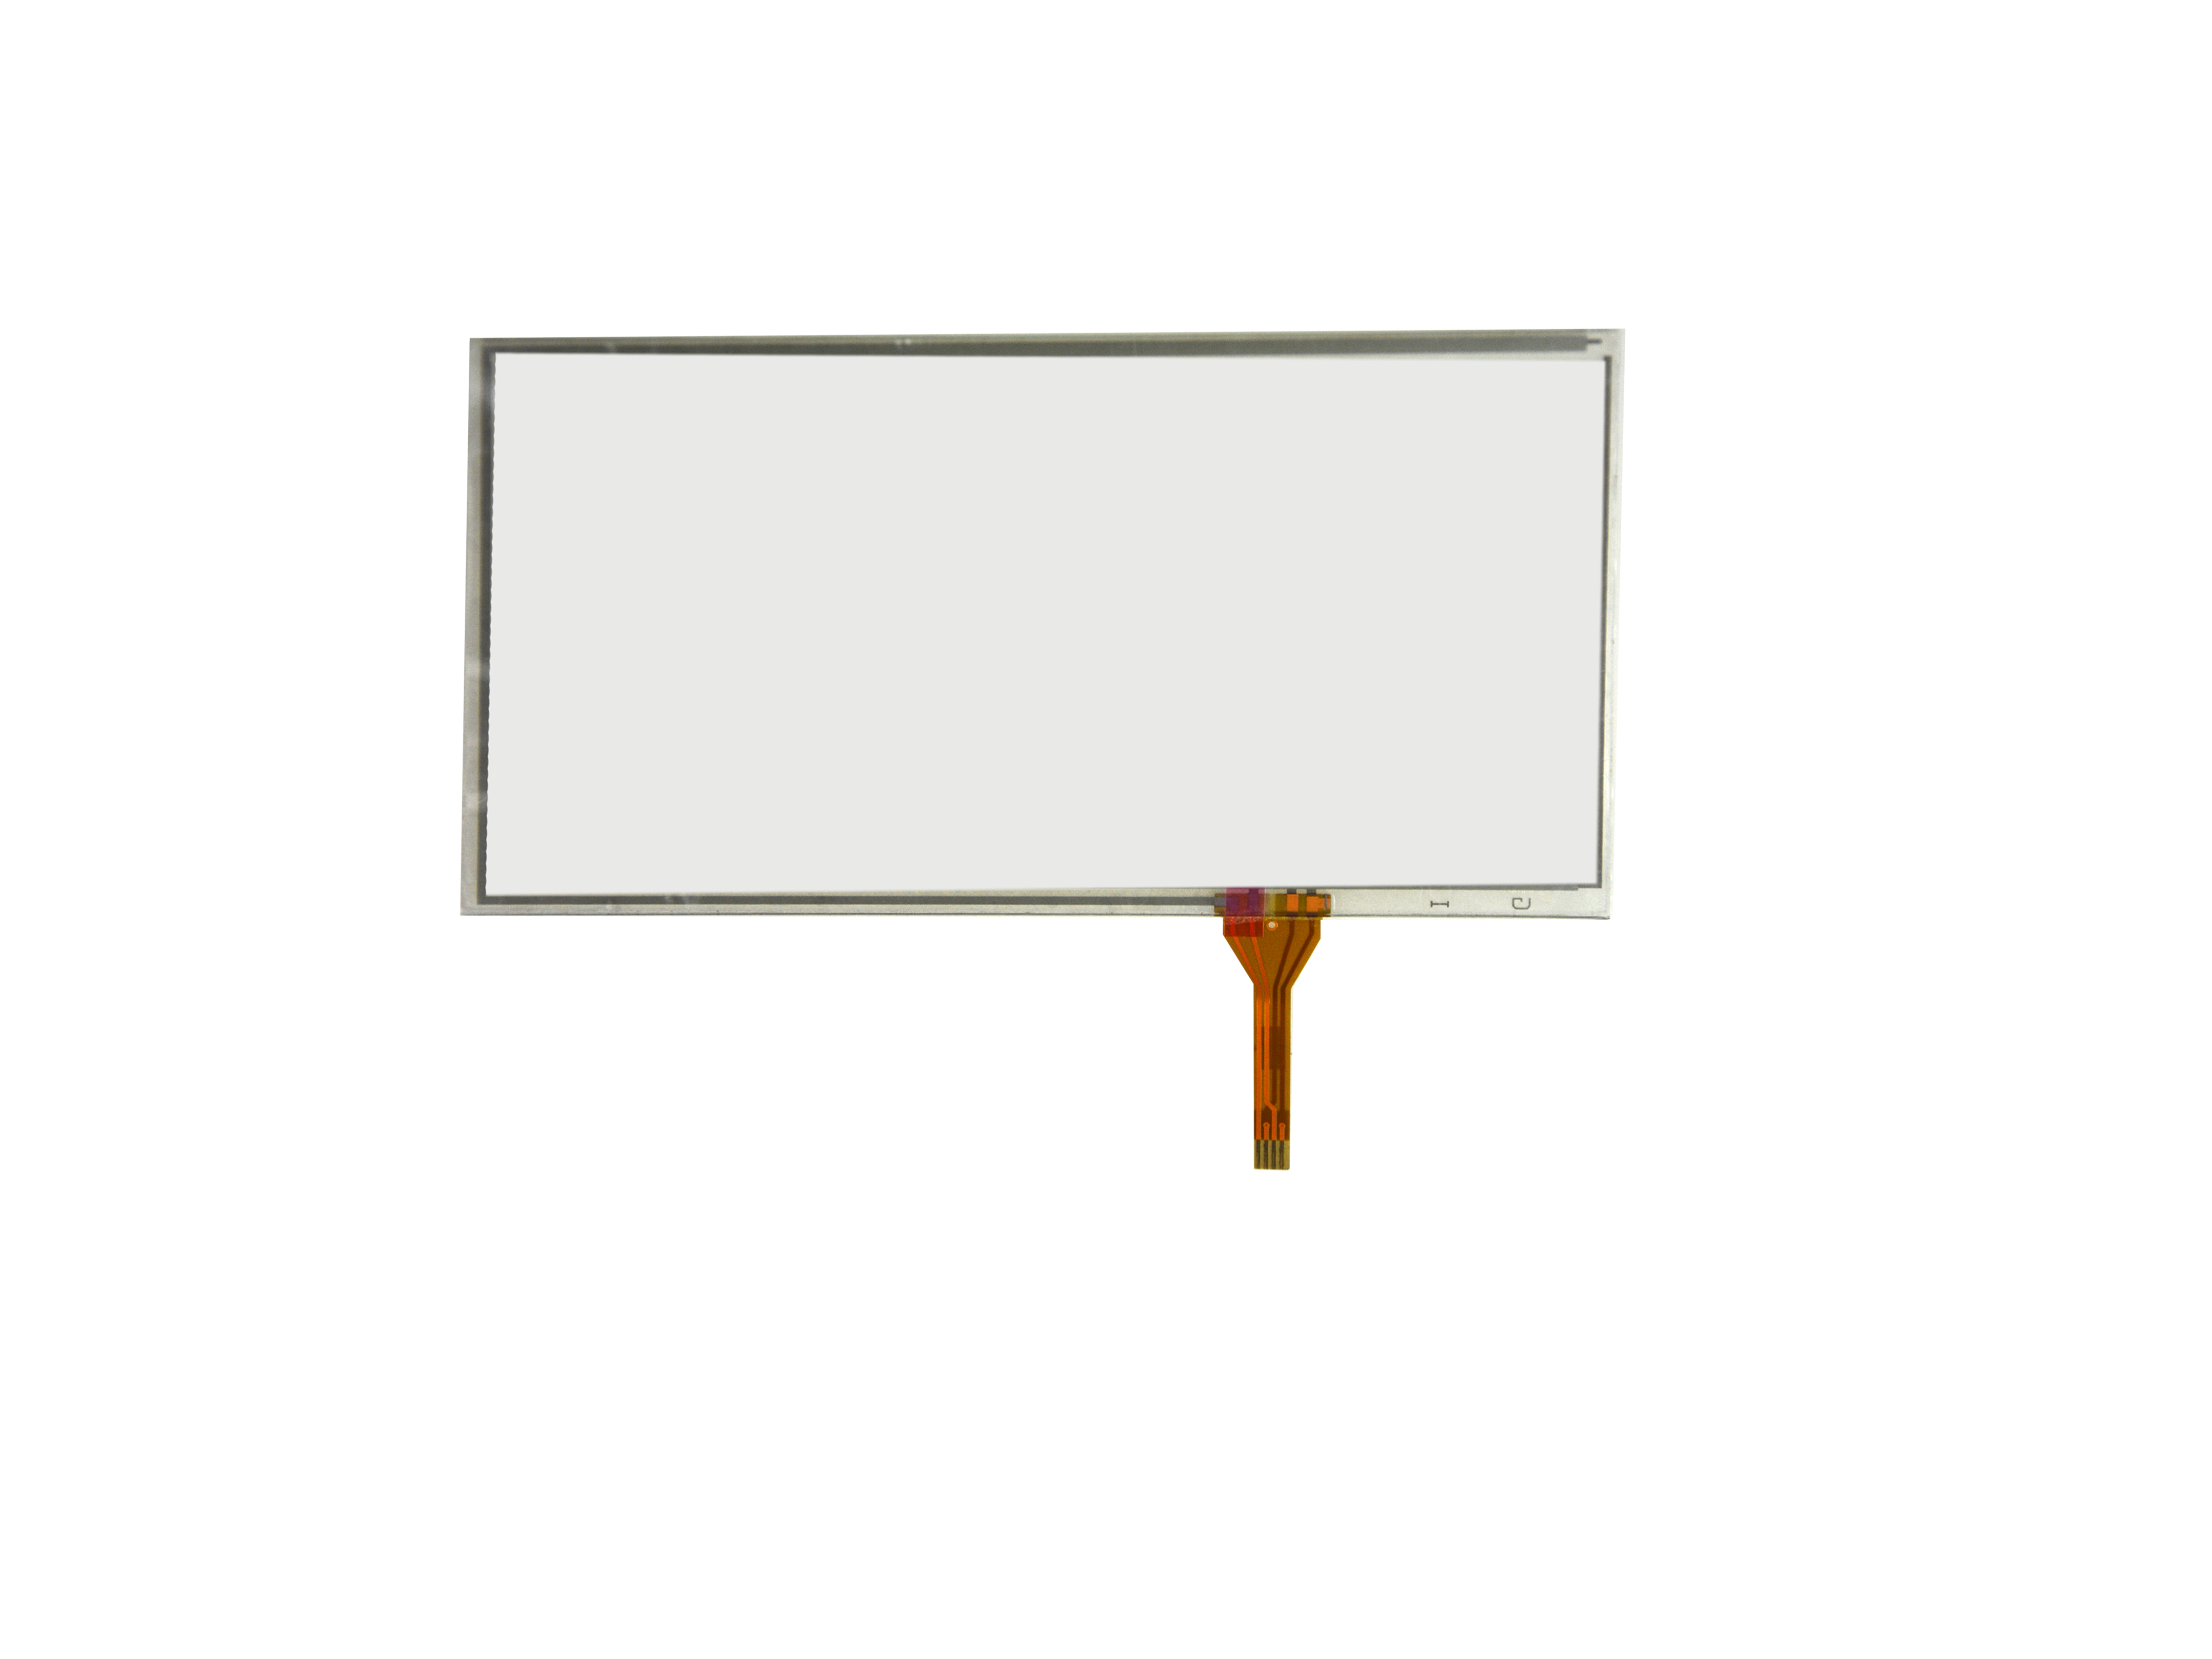 6inch 4 Wire Resistive Touch Panel 149mm x 83mm Handwriting Screen For GPS KDT